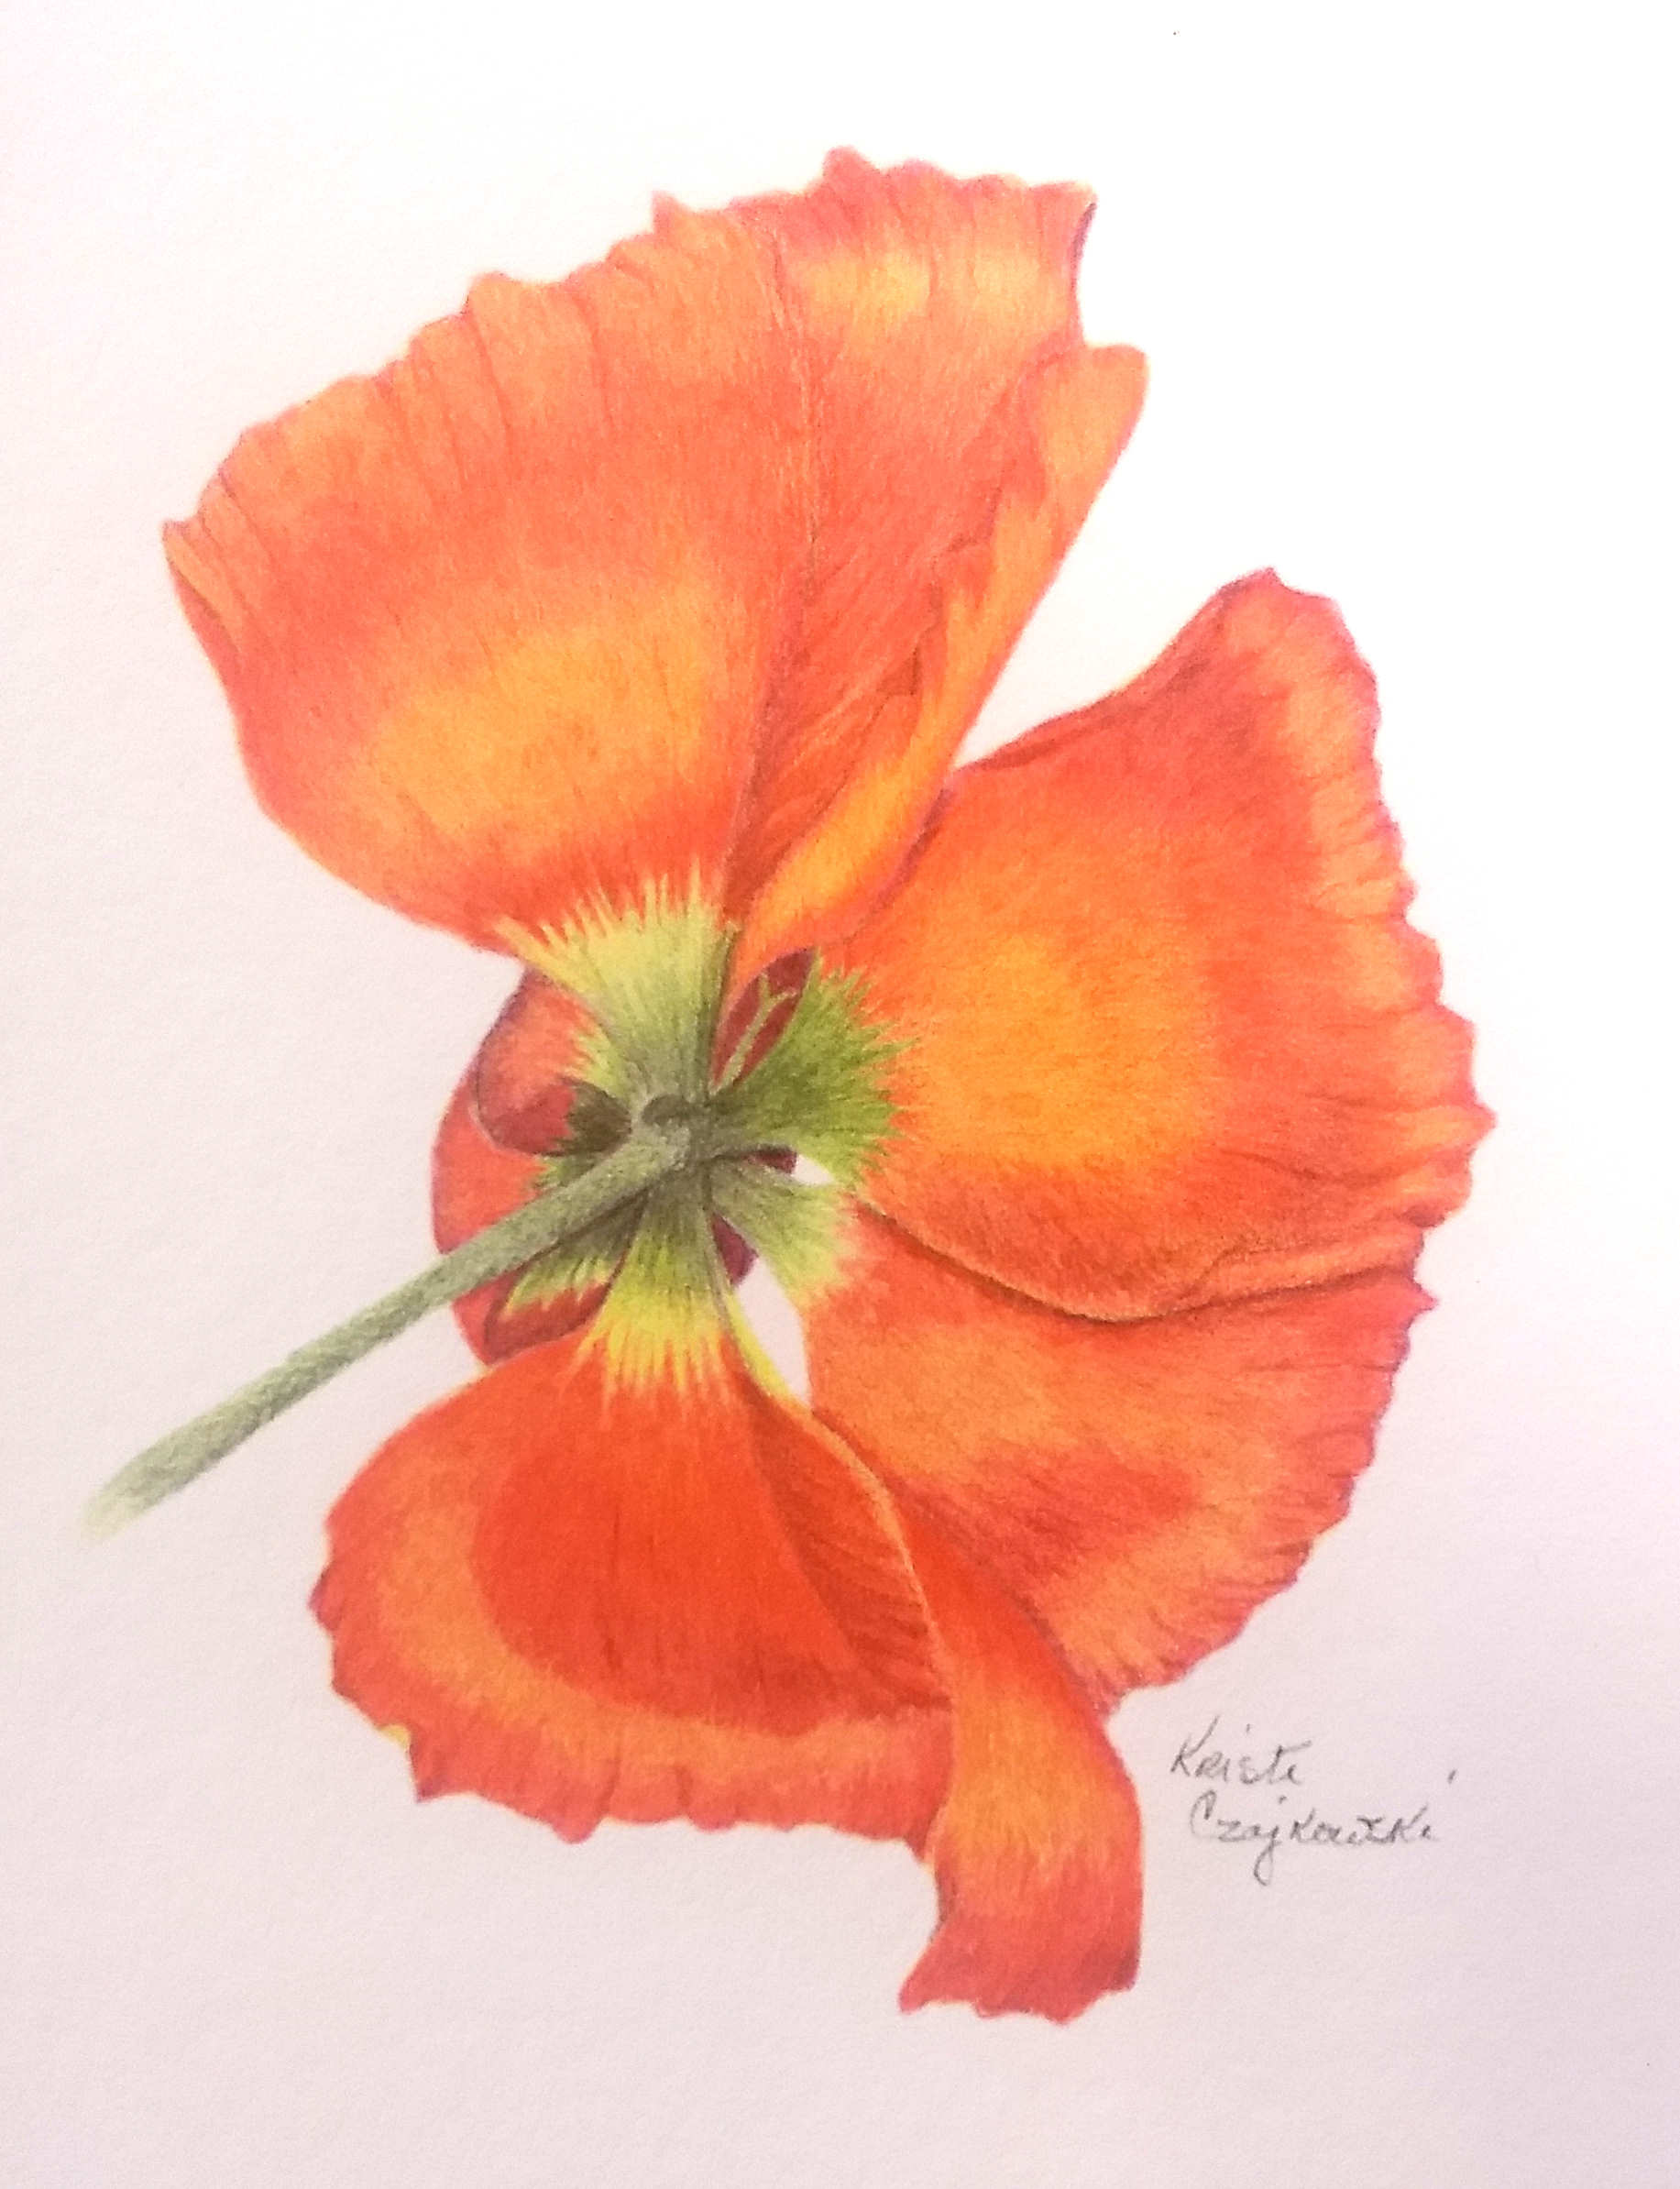 """Kristi Czajkowski - Graduate of School of Botanical Art and Illustration at Denver Botanic Gardens. """"I am fascinated by the juxtaposition of art and science. When drawing botanical art there is a good deal of research before pencil hits paper."""" She is also our President."""